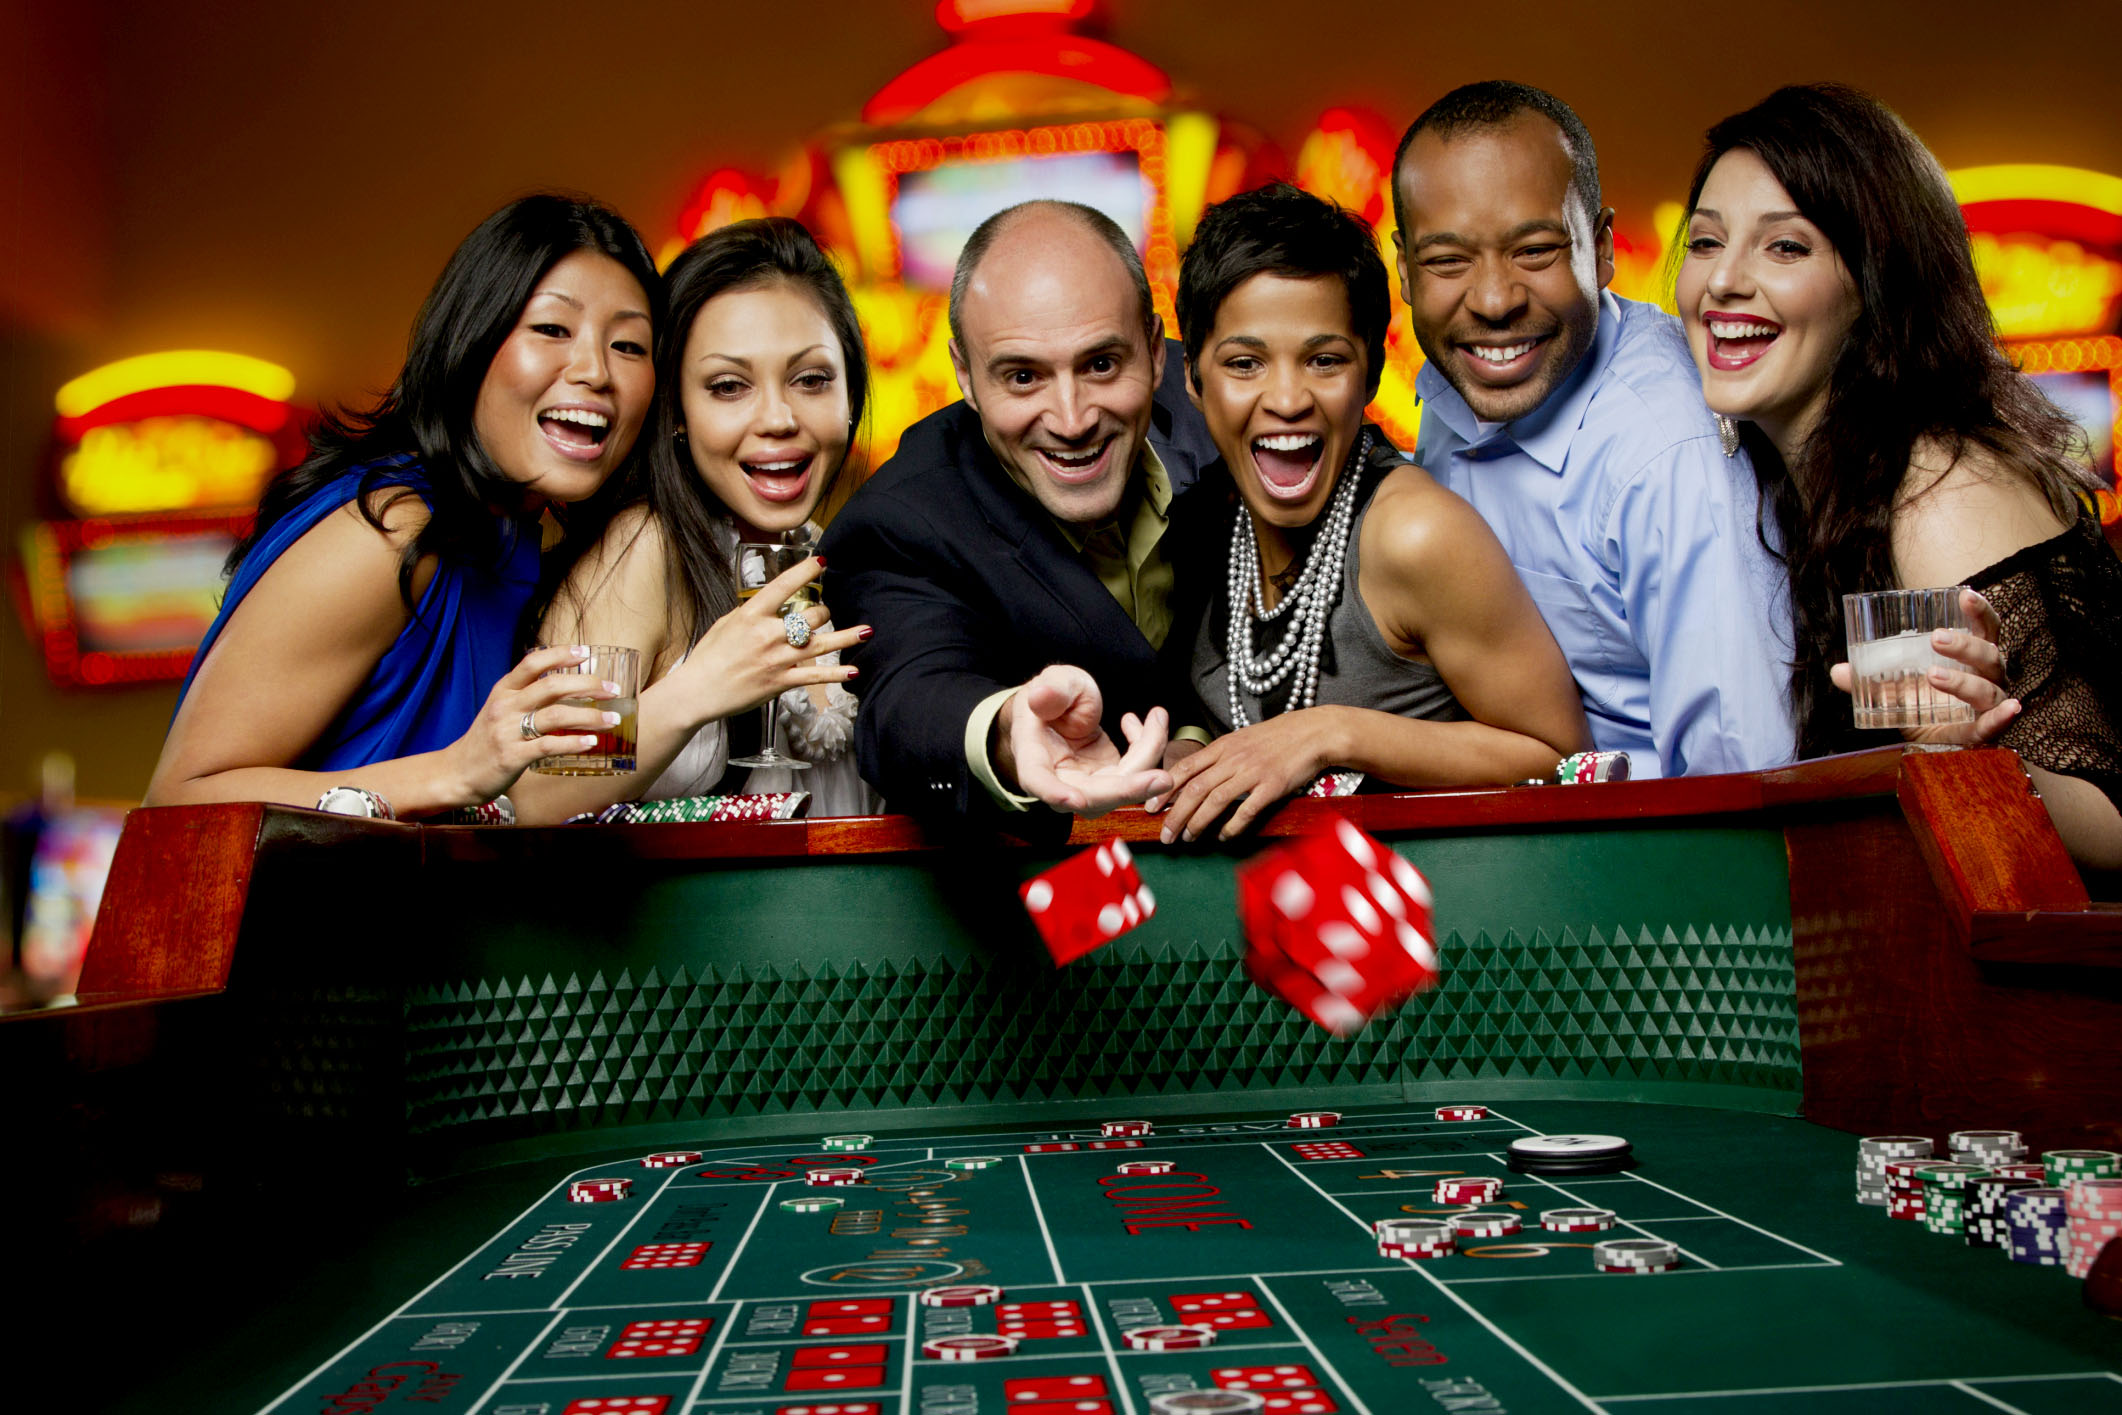 Play slots online free no download